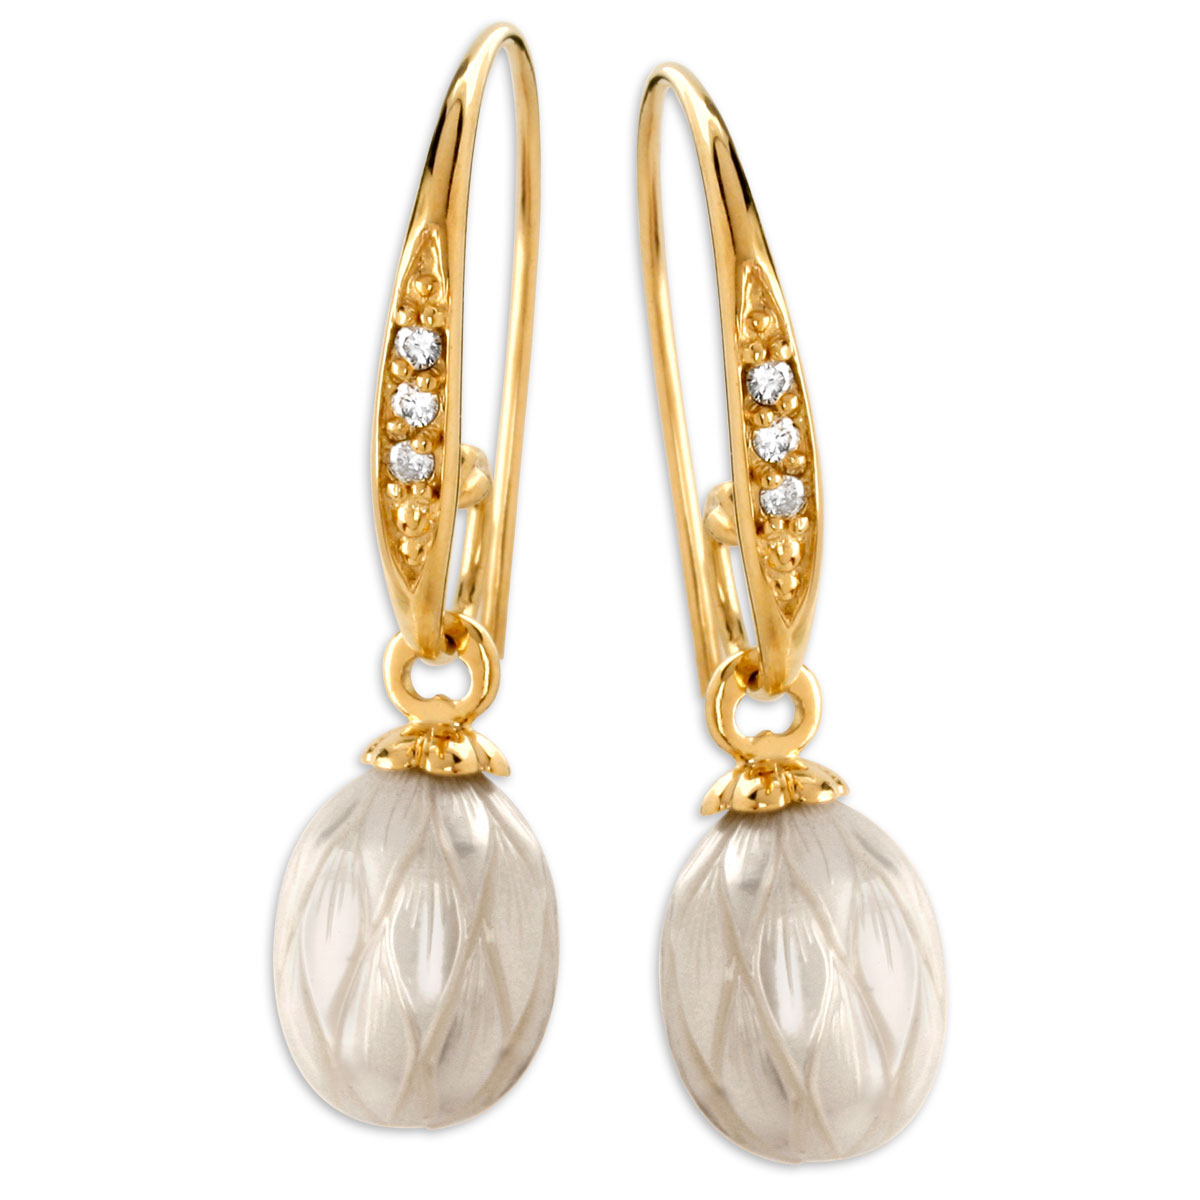 335434-Galatea Carved Pearl & Diamond Earrings